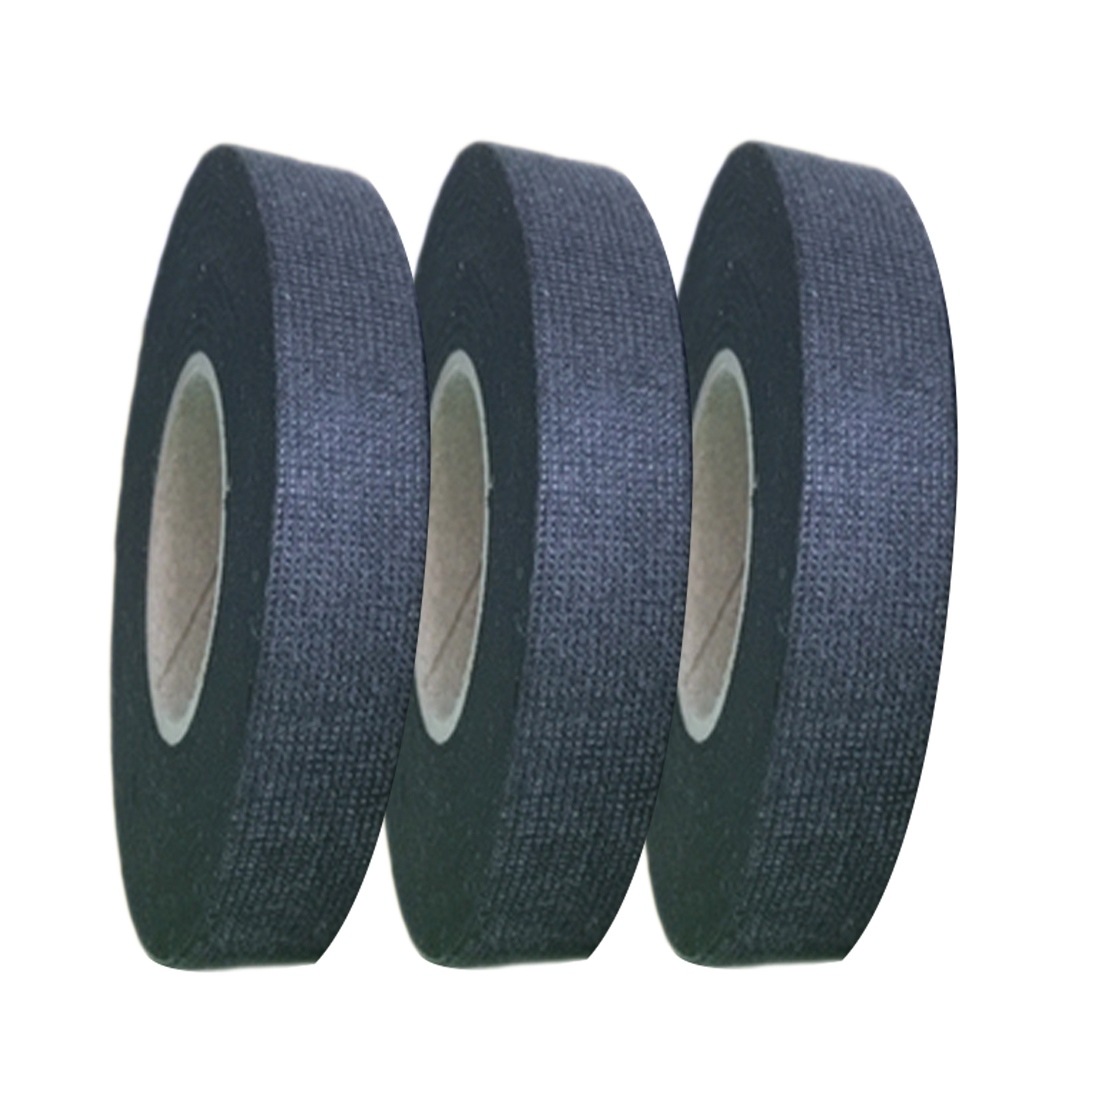 high 1pc heat resistant 19mm x 15m adhesive flannel fabric cloth tape cable harness wiring for car auto repair parts tool in hand tool sets from tools on  [ 1100 x 1100 Pixel ]